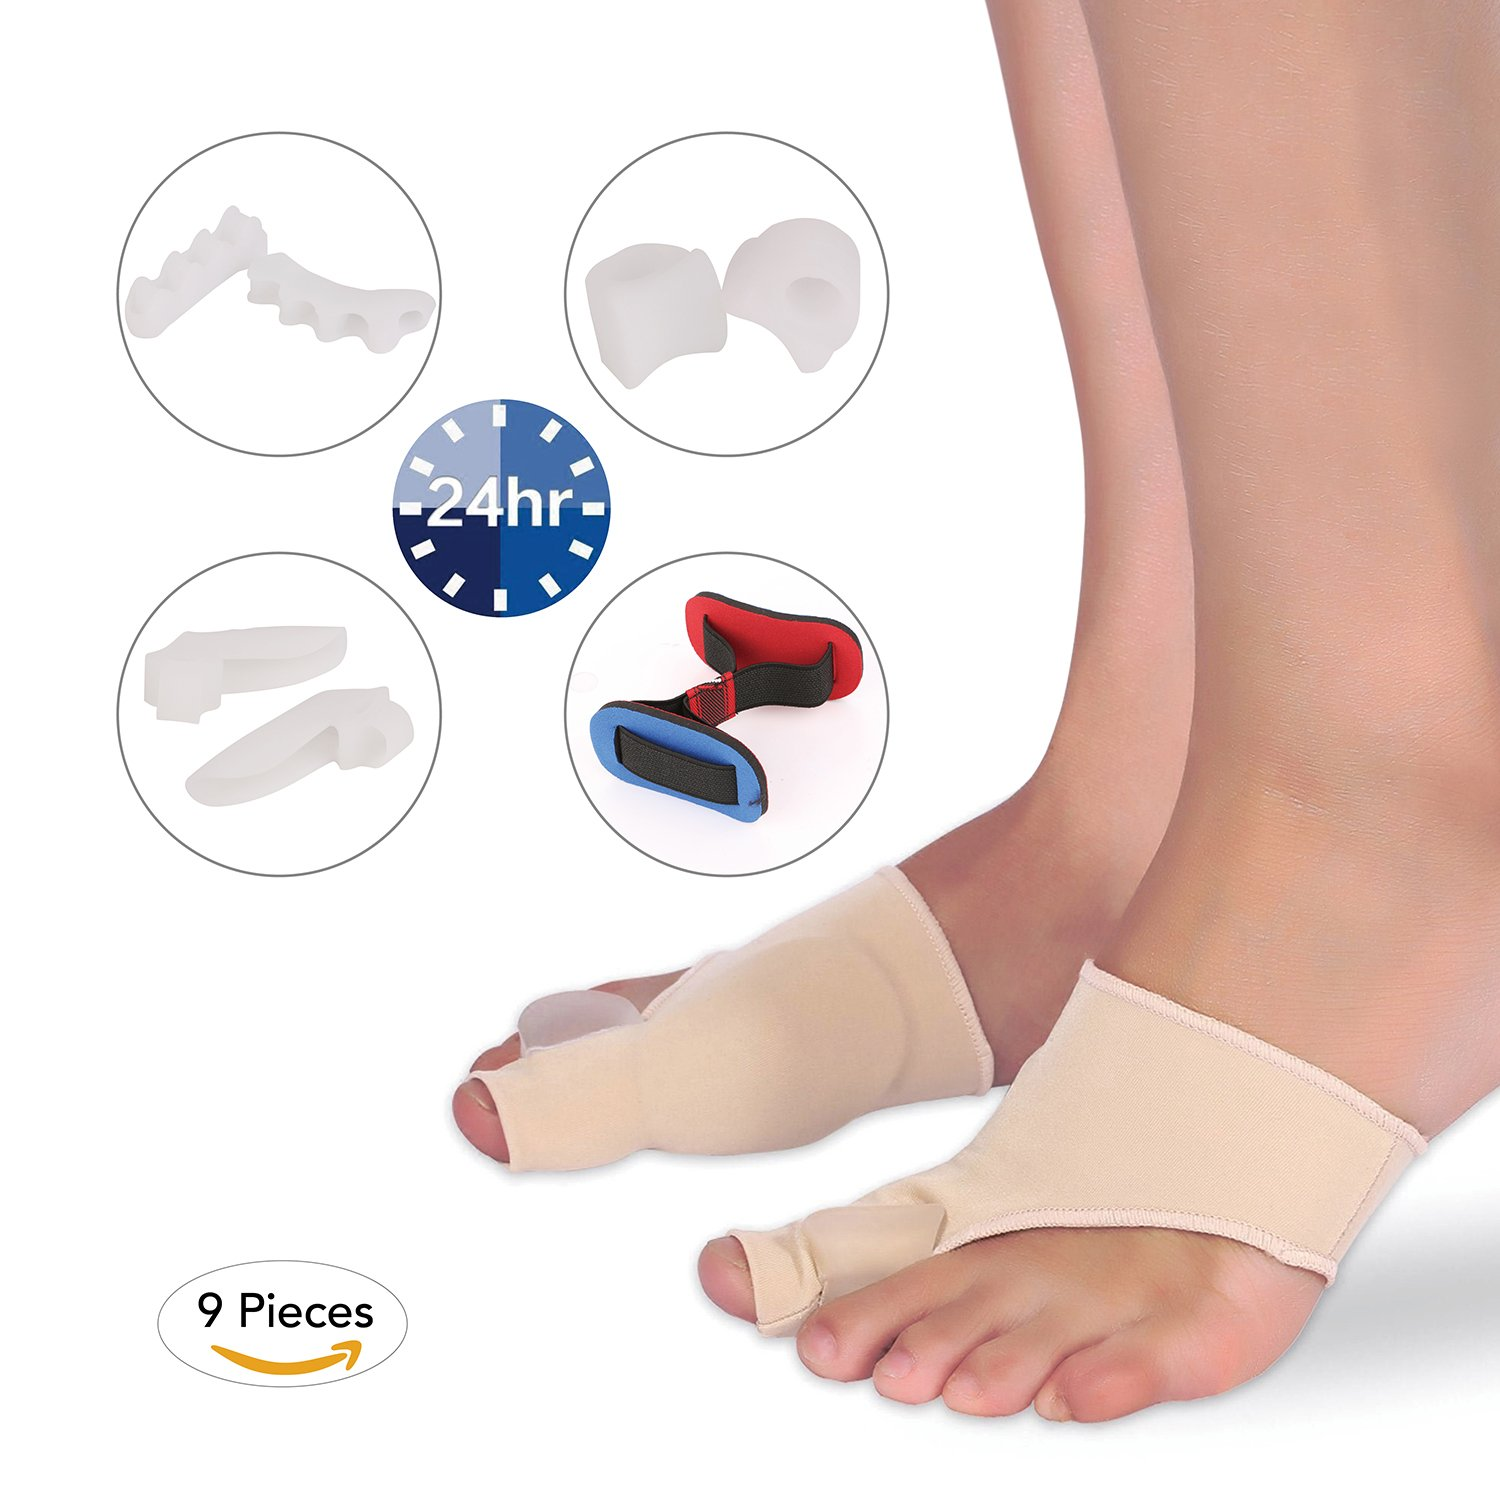 fd1c977728 Amazon.com: MARNUR Bunion Corrector Pads Kit with Bunion Relief Socks  Sleeves and Toe Separators Spacers Straighteners Splint for Bunion Pain,  Hallux Valgus ...